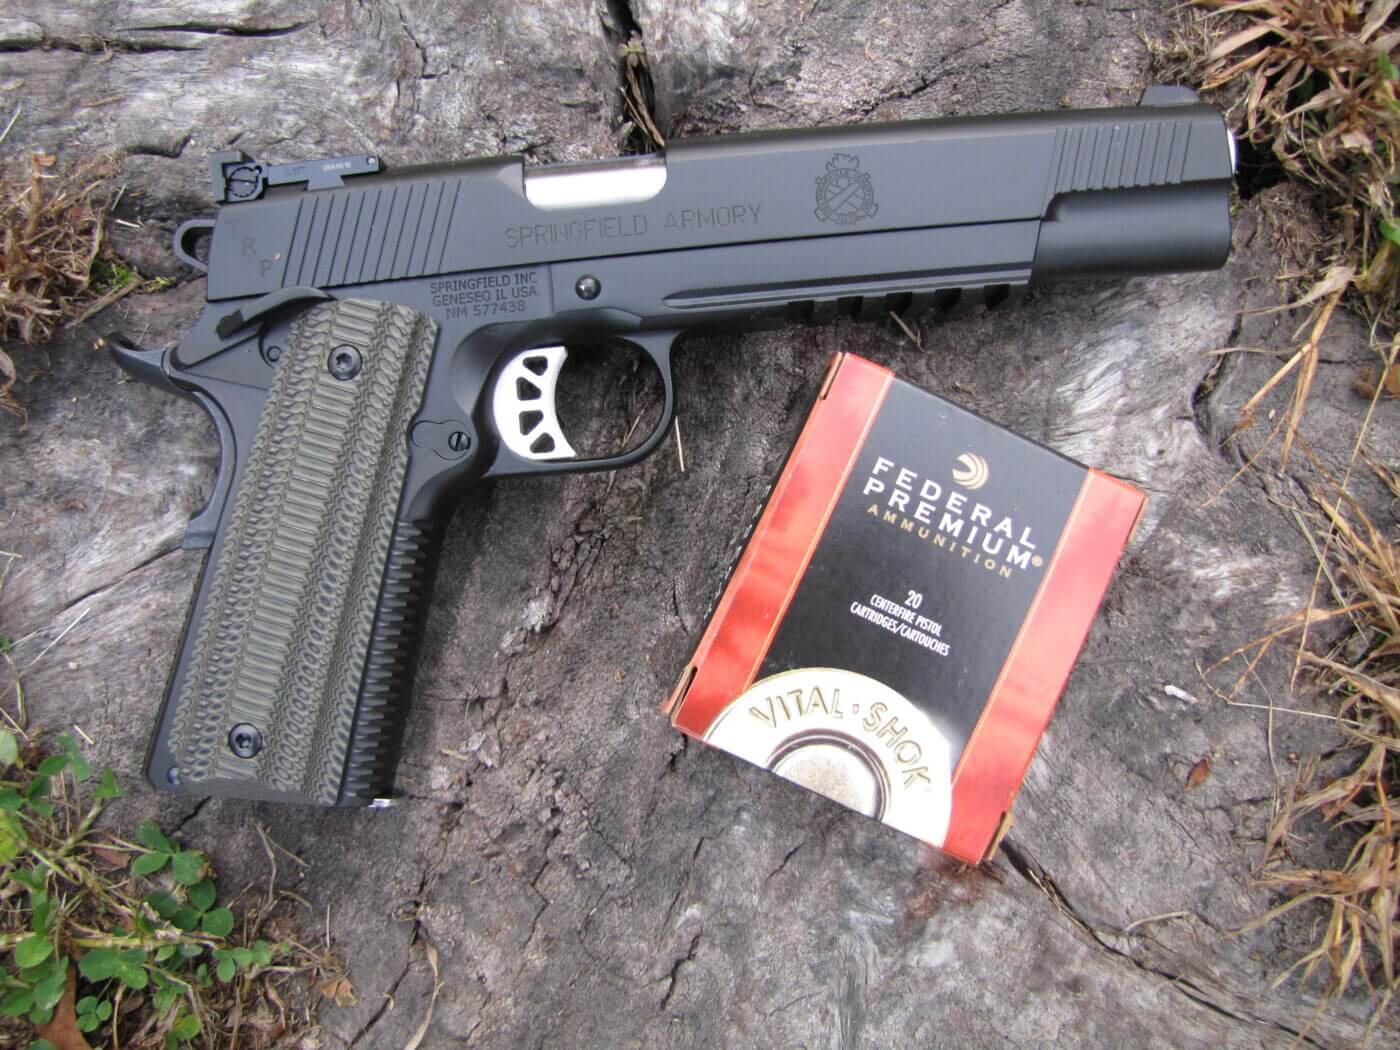 Springfield 1911 TRP with Federal hunting ammo